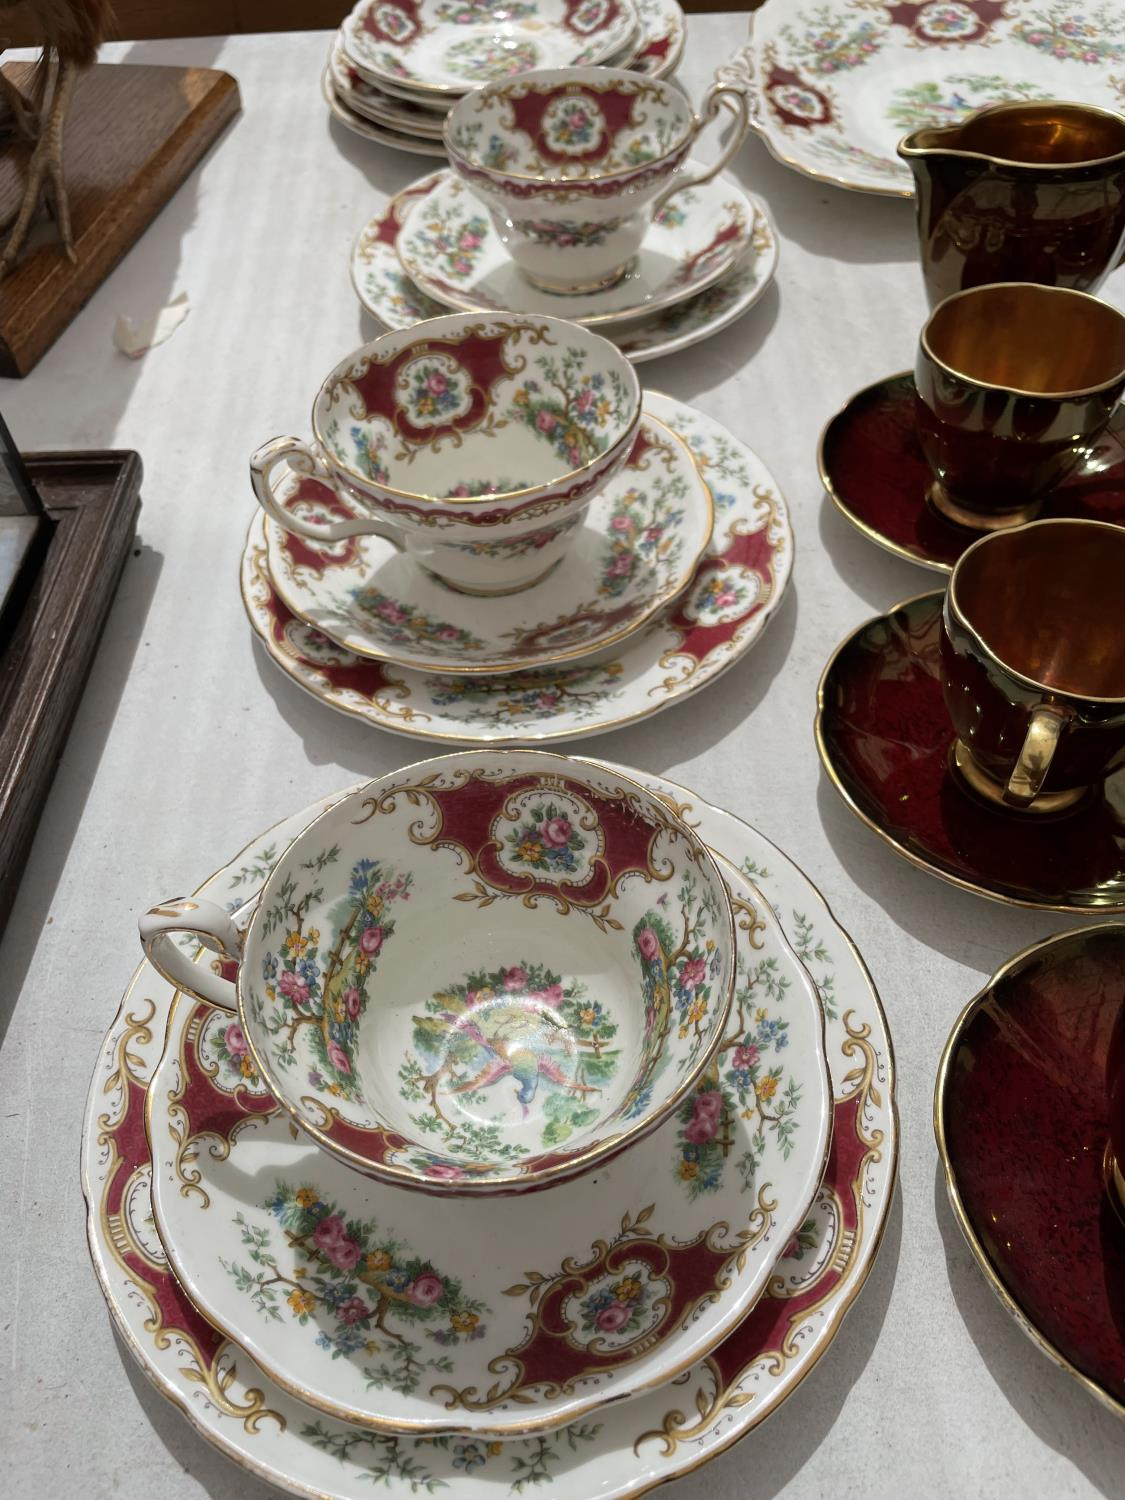 AN ASSORTMENT OF CERAMIC WARE TO INCLUDE A CARLTON WARE COFFEE SERVICE SET AND FLORAL TRIOS ETC - Image 7 of 10